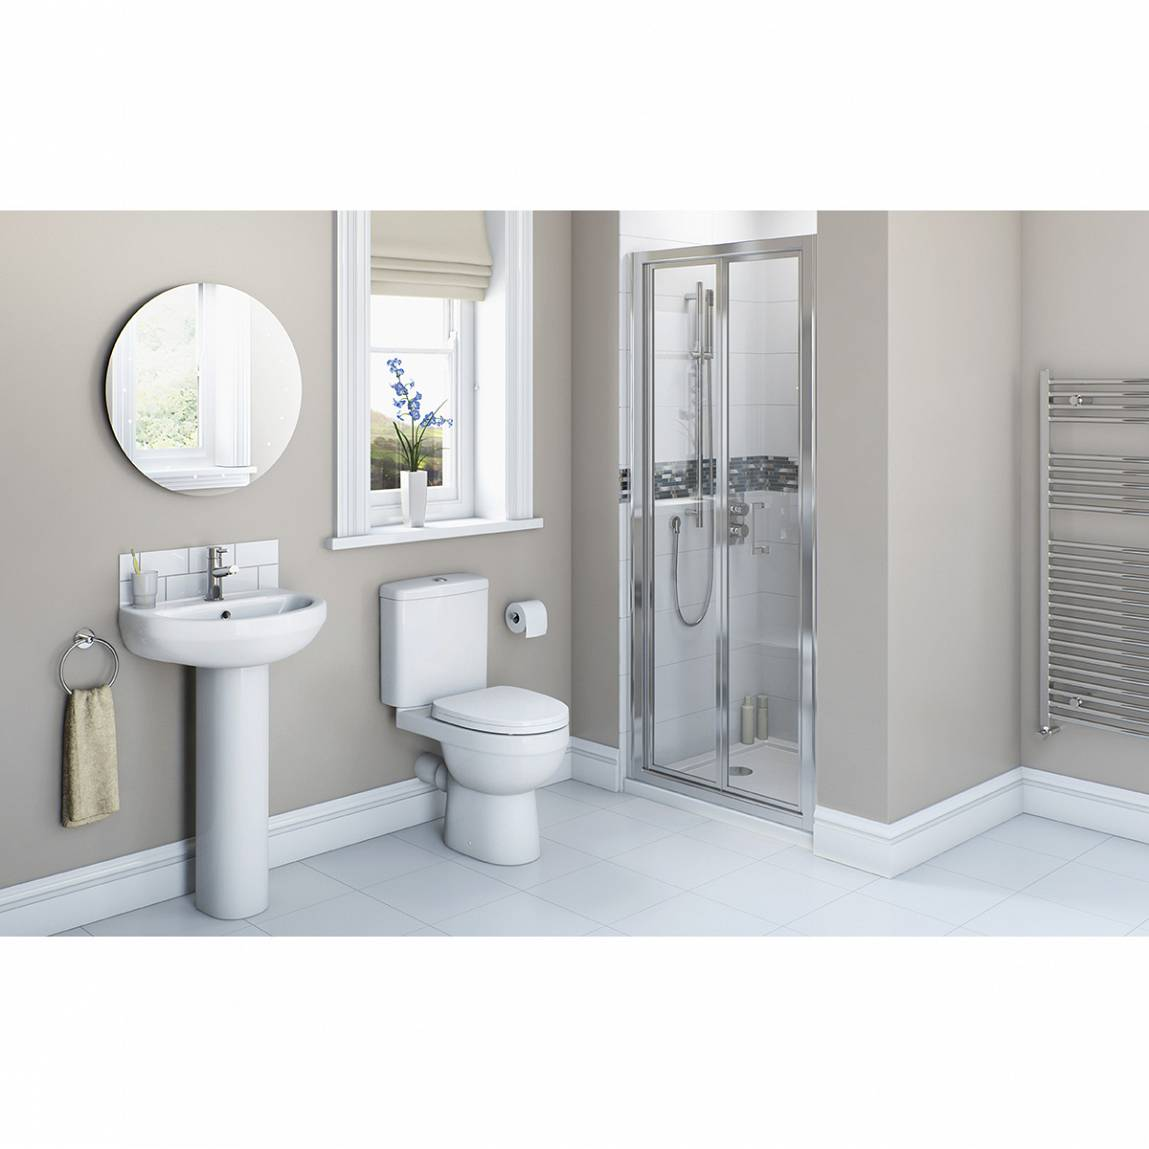 Image of Energy Bathroom set with Bifold Shower Door 760